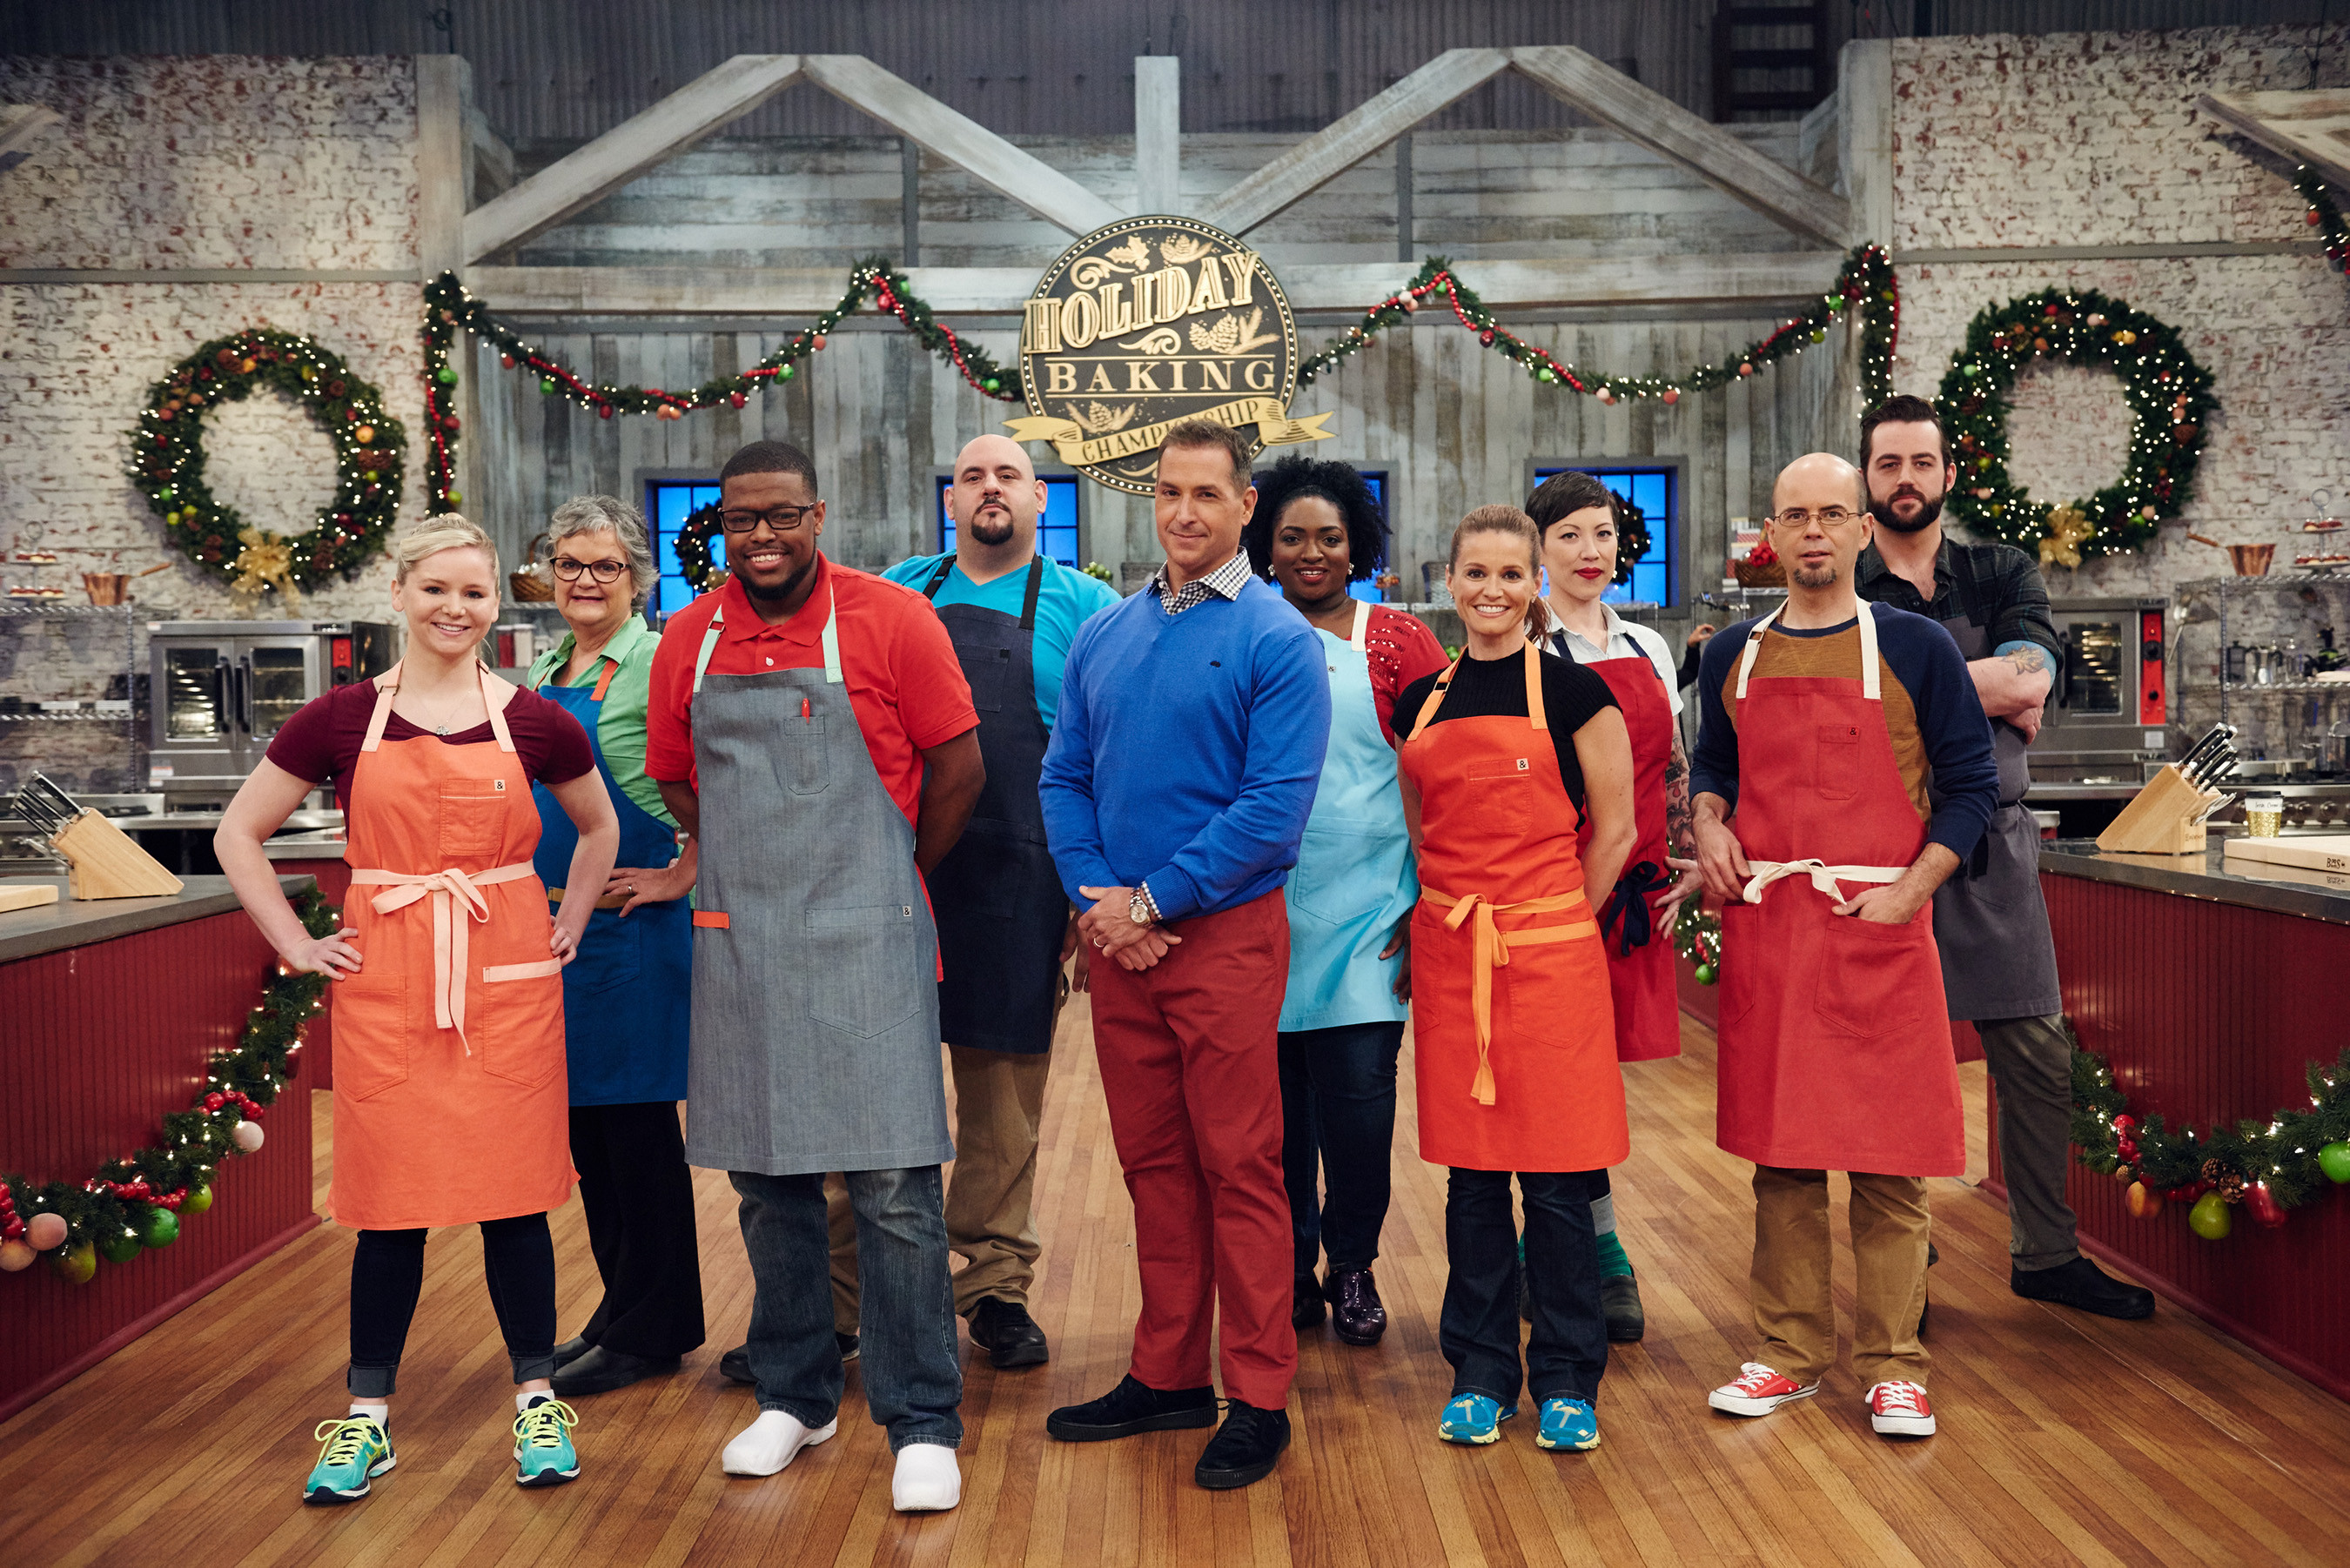 Christmas Baking Championship  A New Batch Talented Bakers Aim To Sleigh The